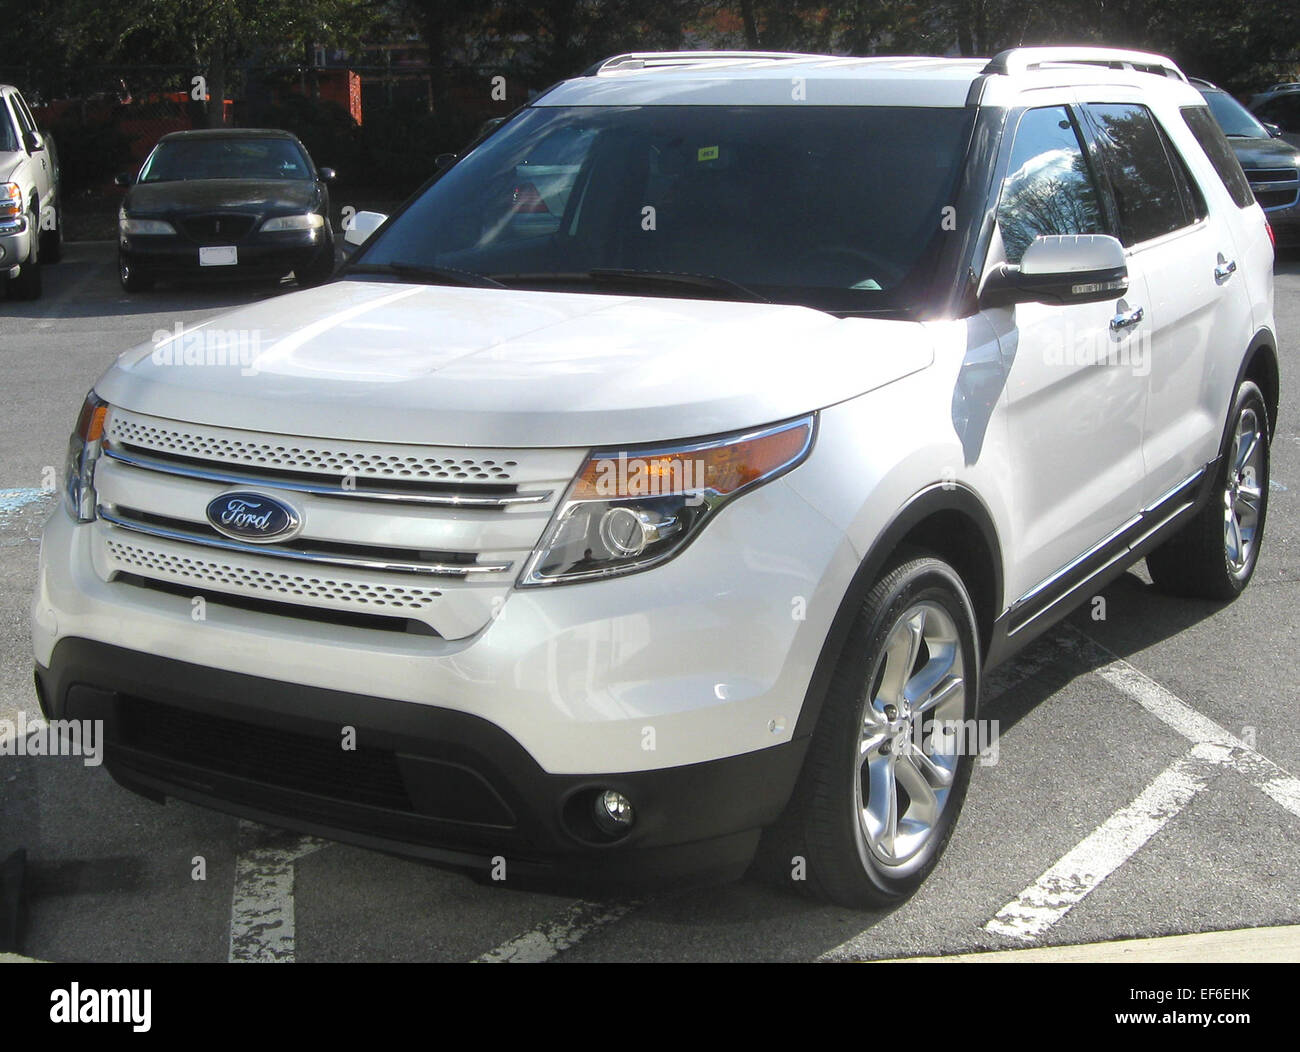 2011 Ford Explorer Limited >> 2011 Ford Explorer Limited 12 15 2010 3 Stock Photo